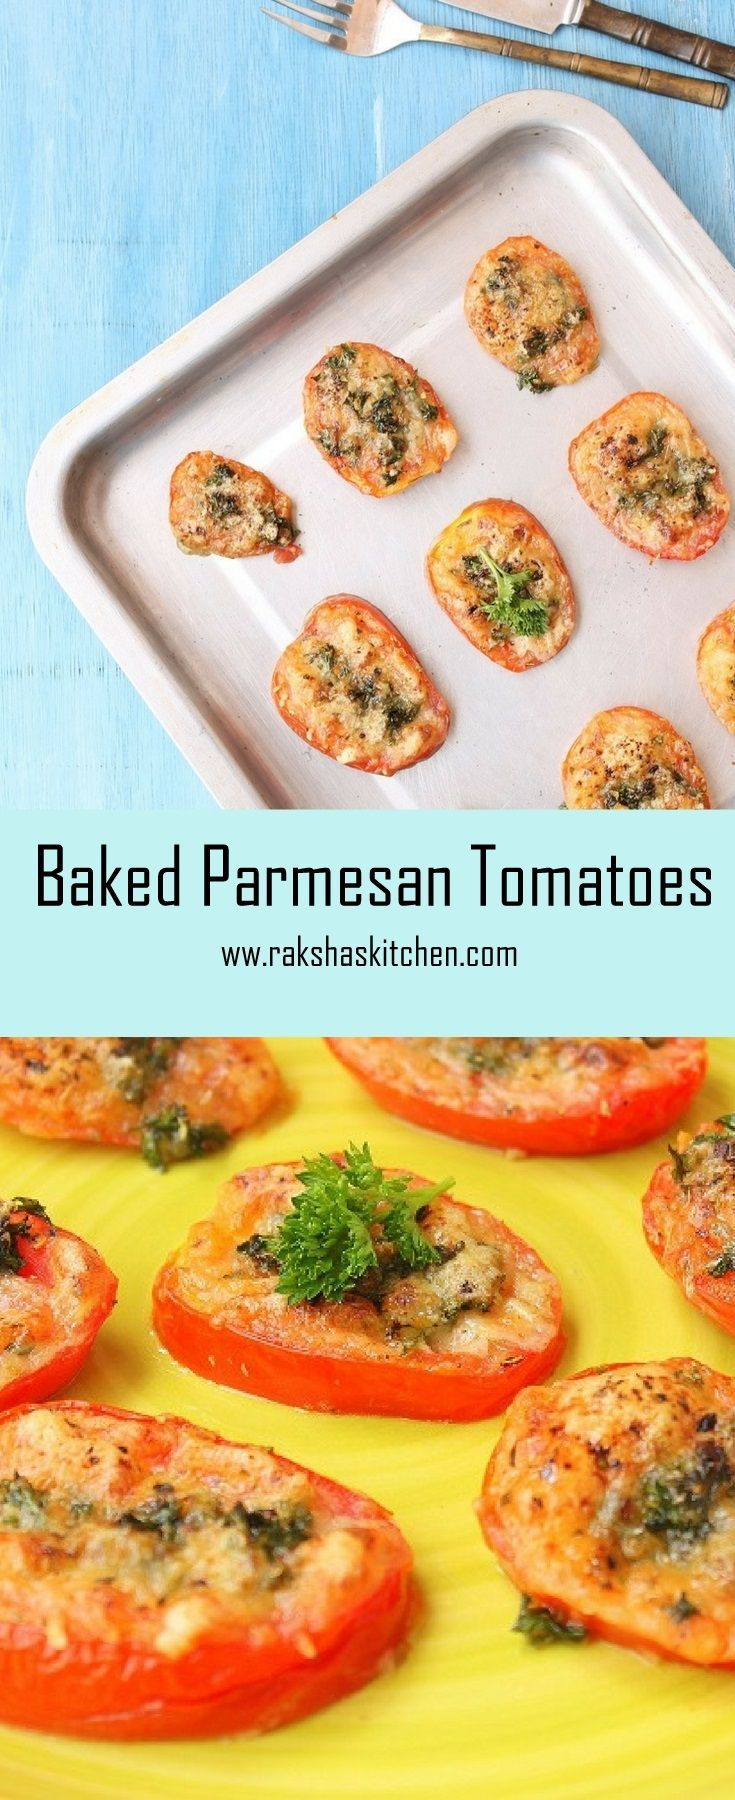 Baked Parmesan Tomatoes Serve them as delicious starters. Full of nutrition. #recipes #tomatorecipe #bakestomatoes #parmesan